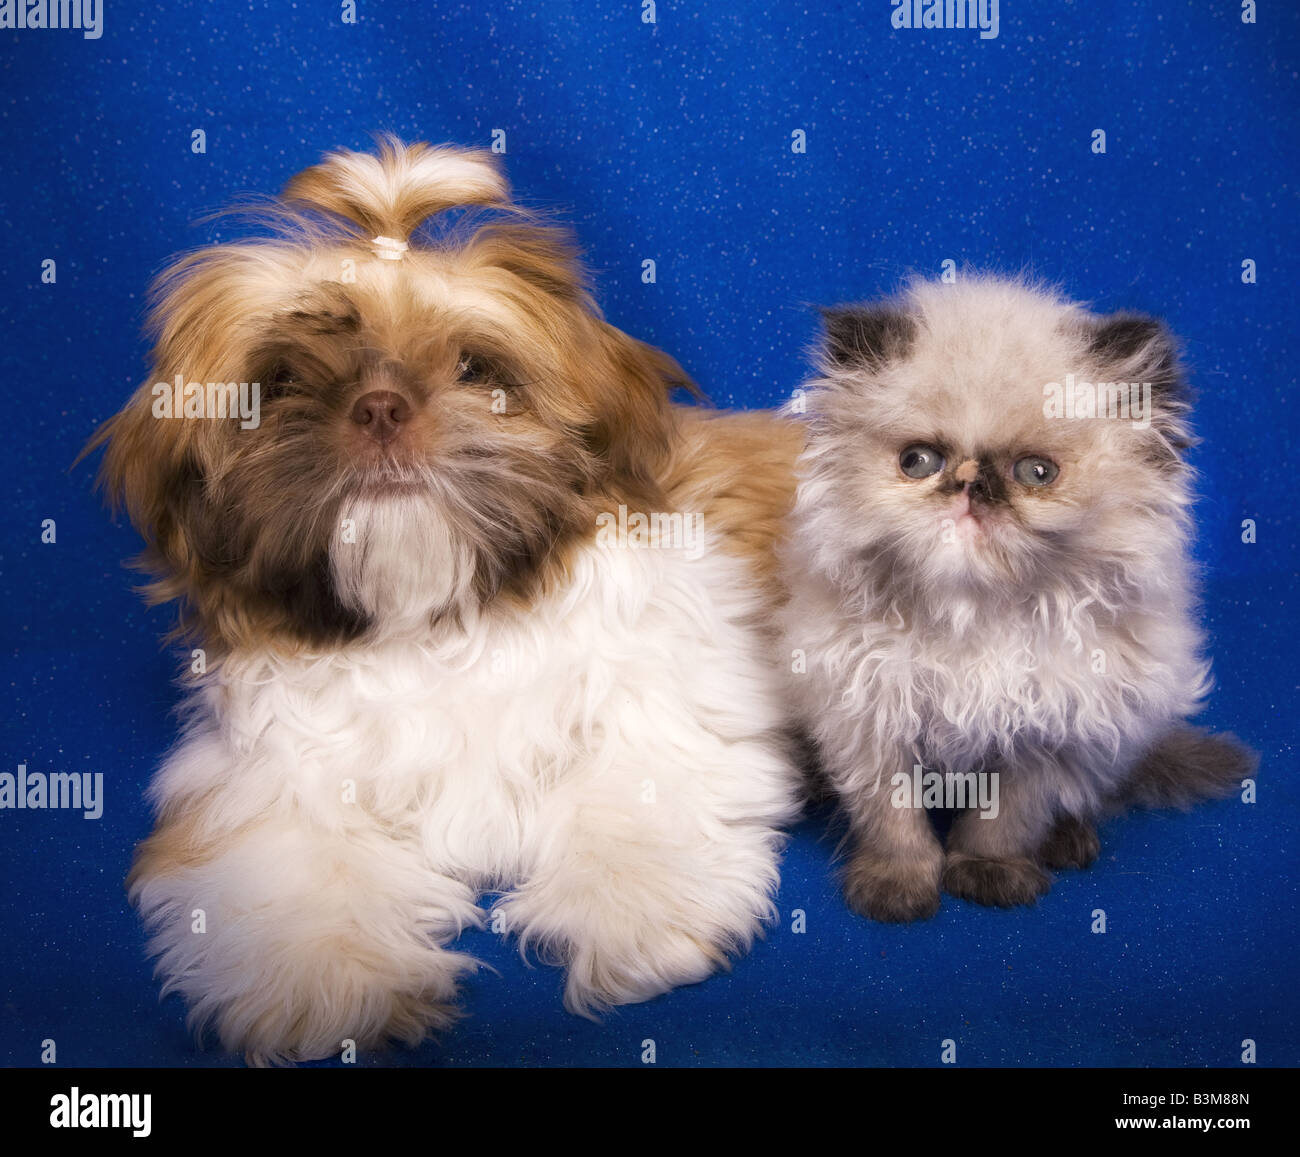 Cute Shih Tzu puppy with Himalayan kitten on blue background - Stock Image